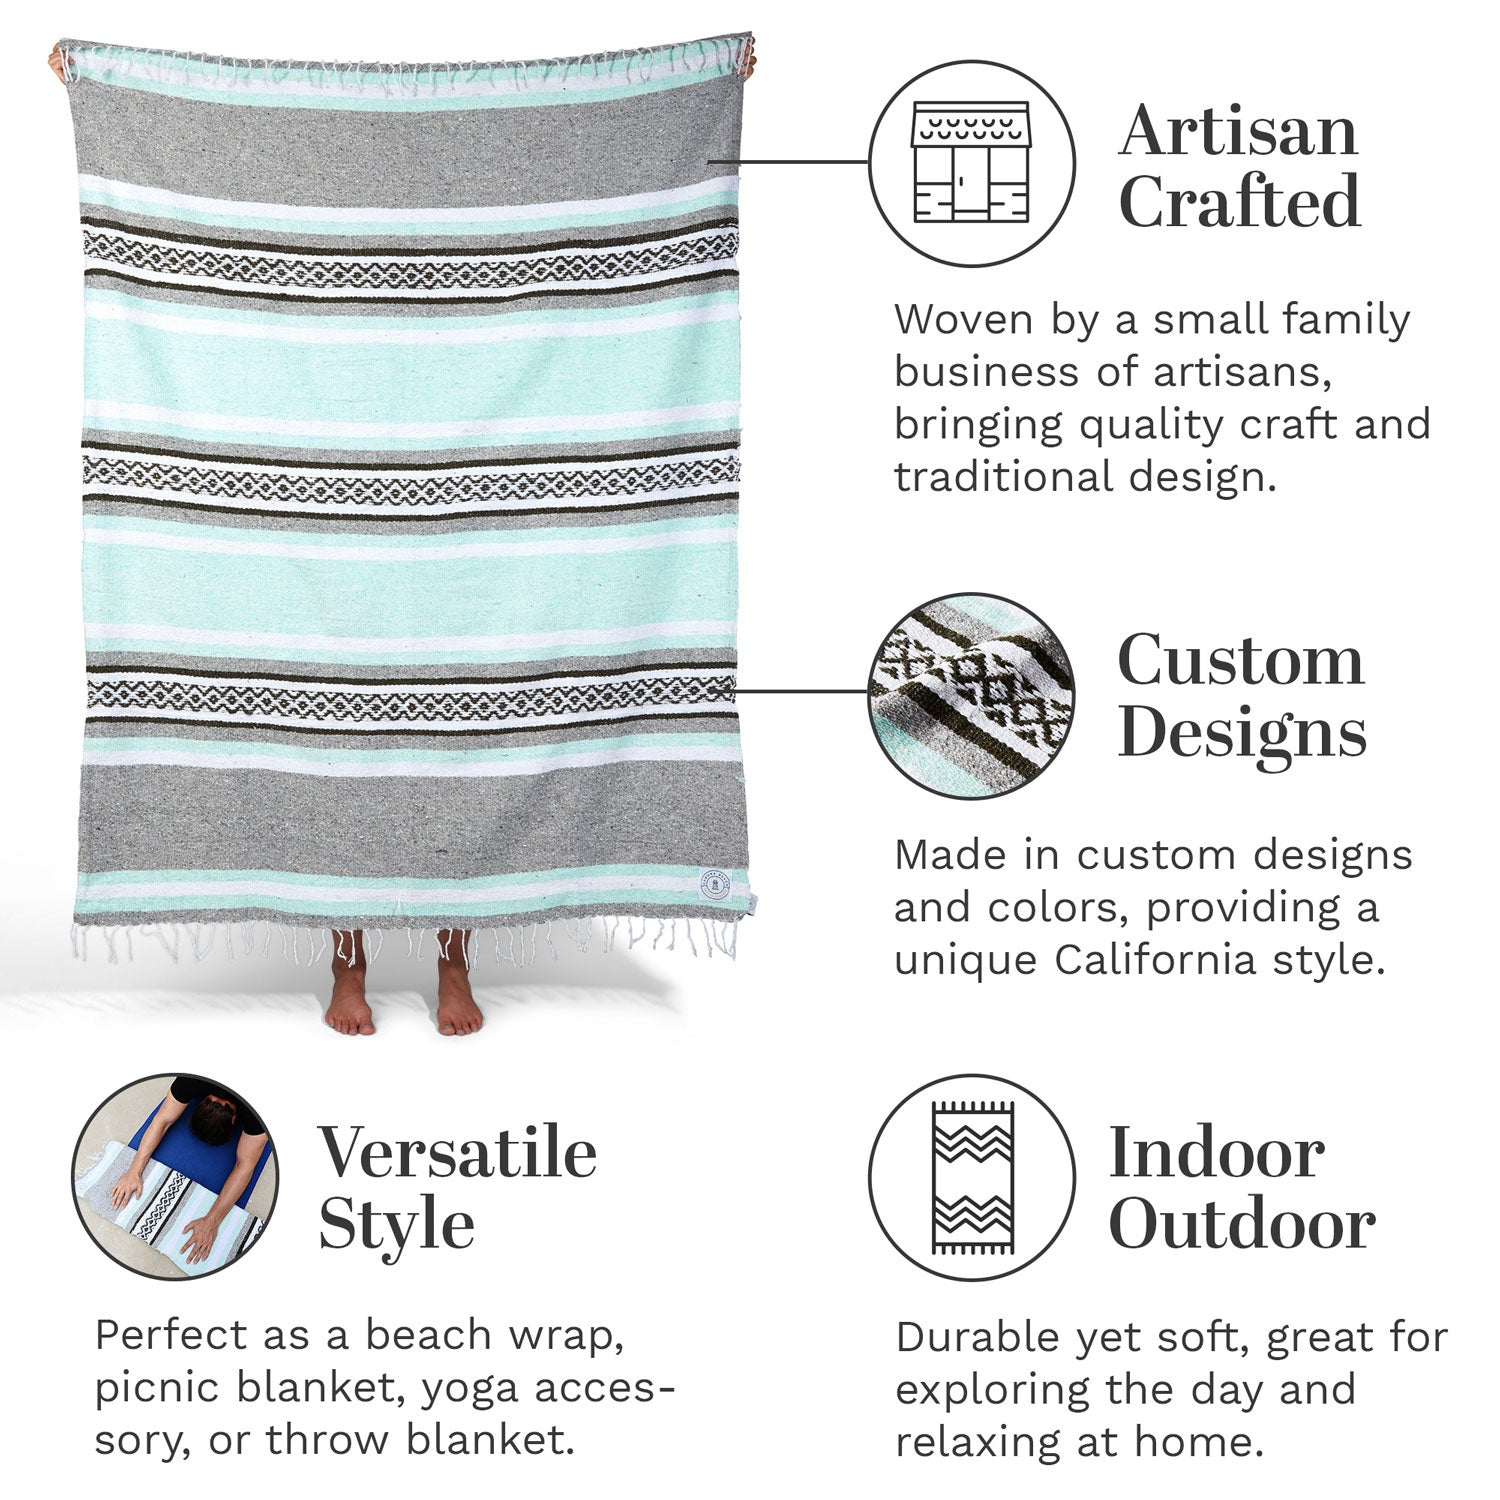 Infographic of our mint green and gray Mexican blanket highlighting its artisan craftsmanship and versatile style for use at home, on the beach, and for yoga.